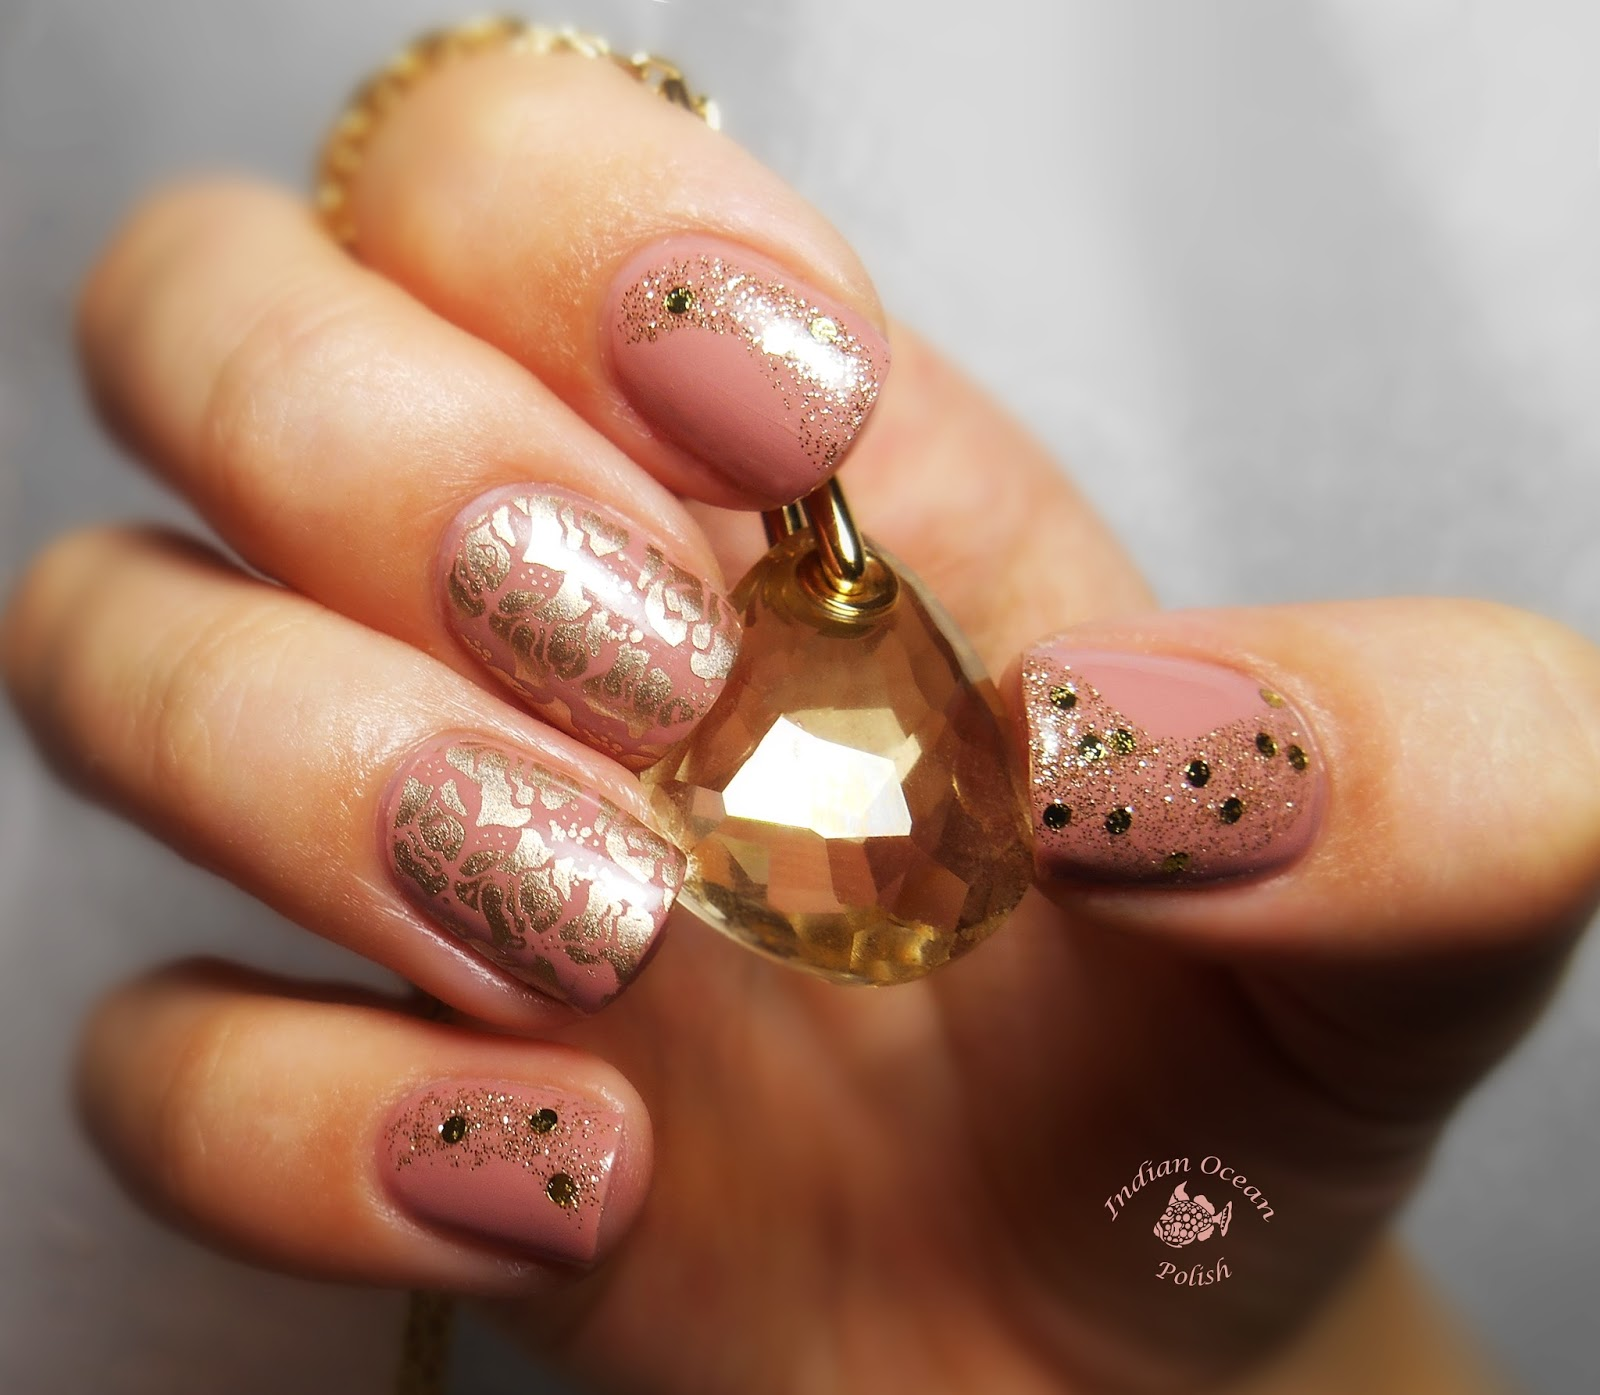 Indian ocean polish pink gold and rose nails pink gold and rose nails prinsesfo Image collections